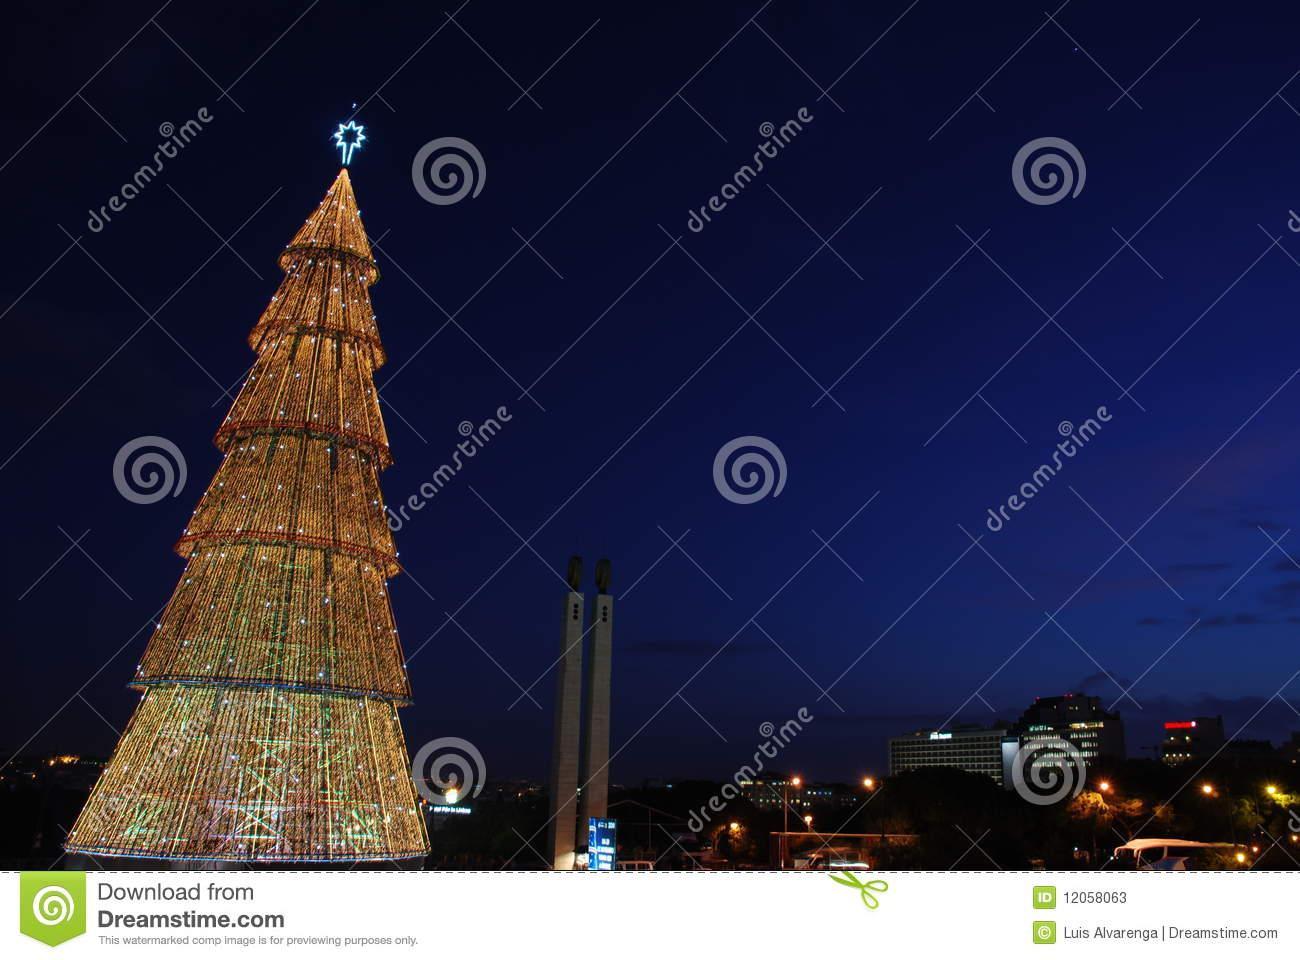 sch ner hoher weihnachtsbaum in lissabon sonnenuntergang. Black Bedroom Furniture Sets. Home Design Ideas